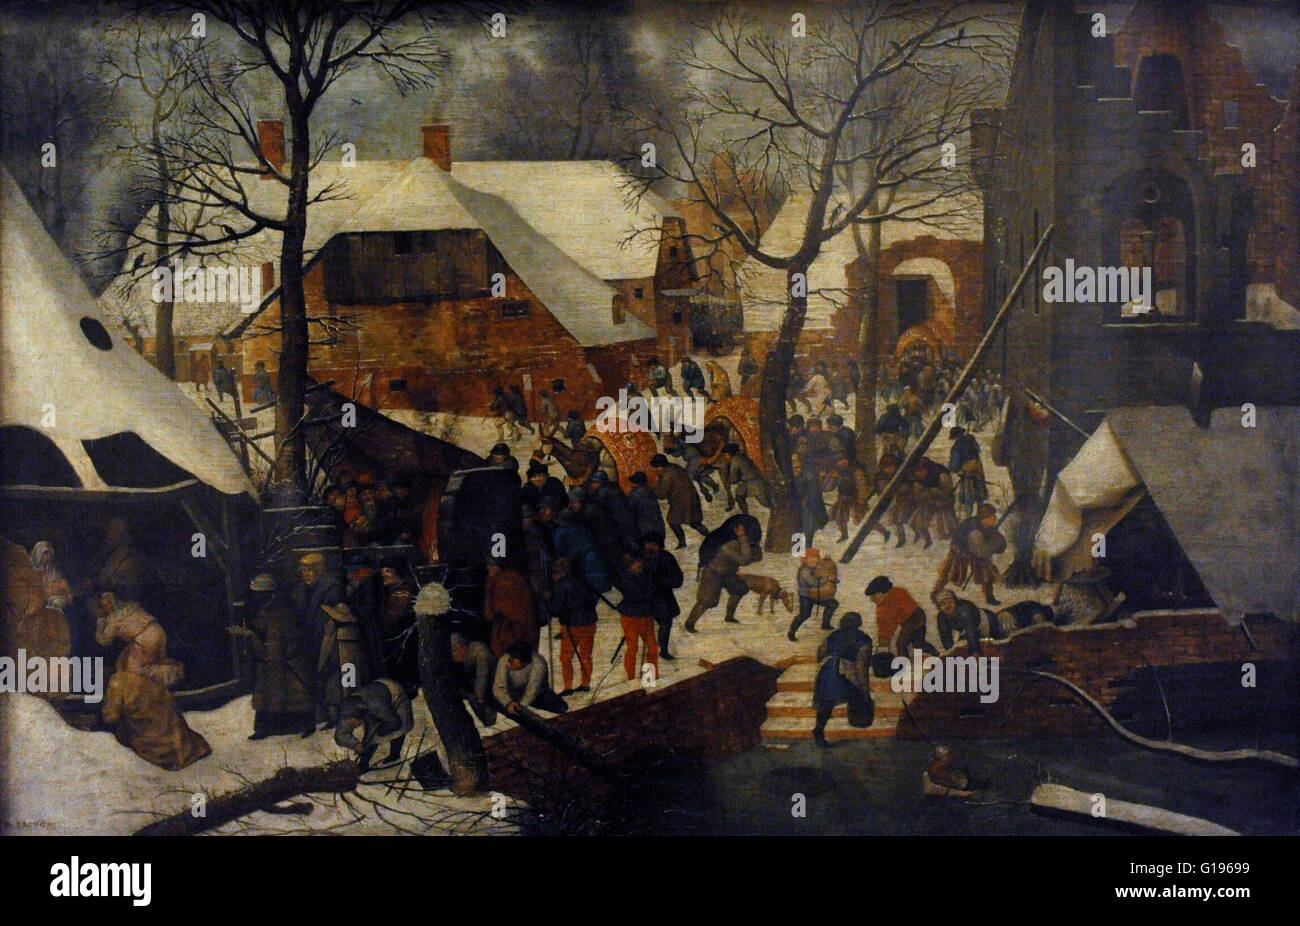 Pieter Brueghel the Younger (1564-1638). Flemish painter. Adoration of the Magi. Second half of the 16th century. - Stock Image